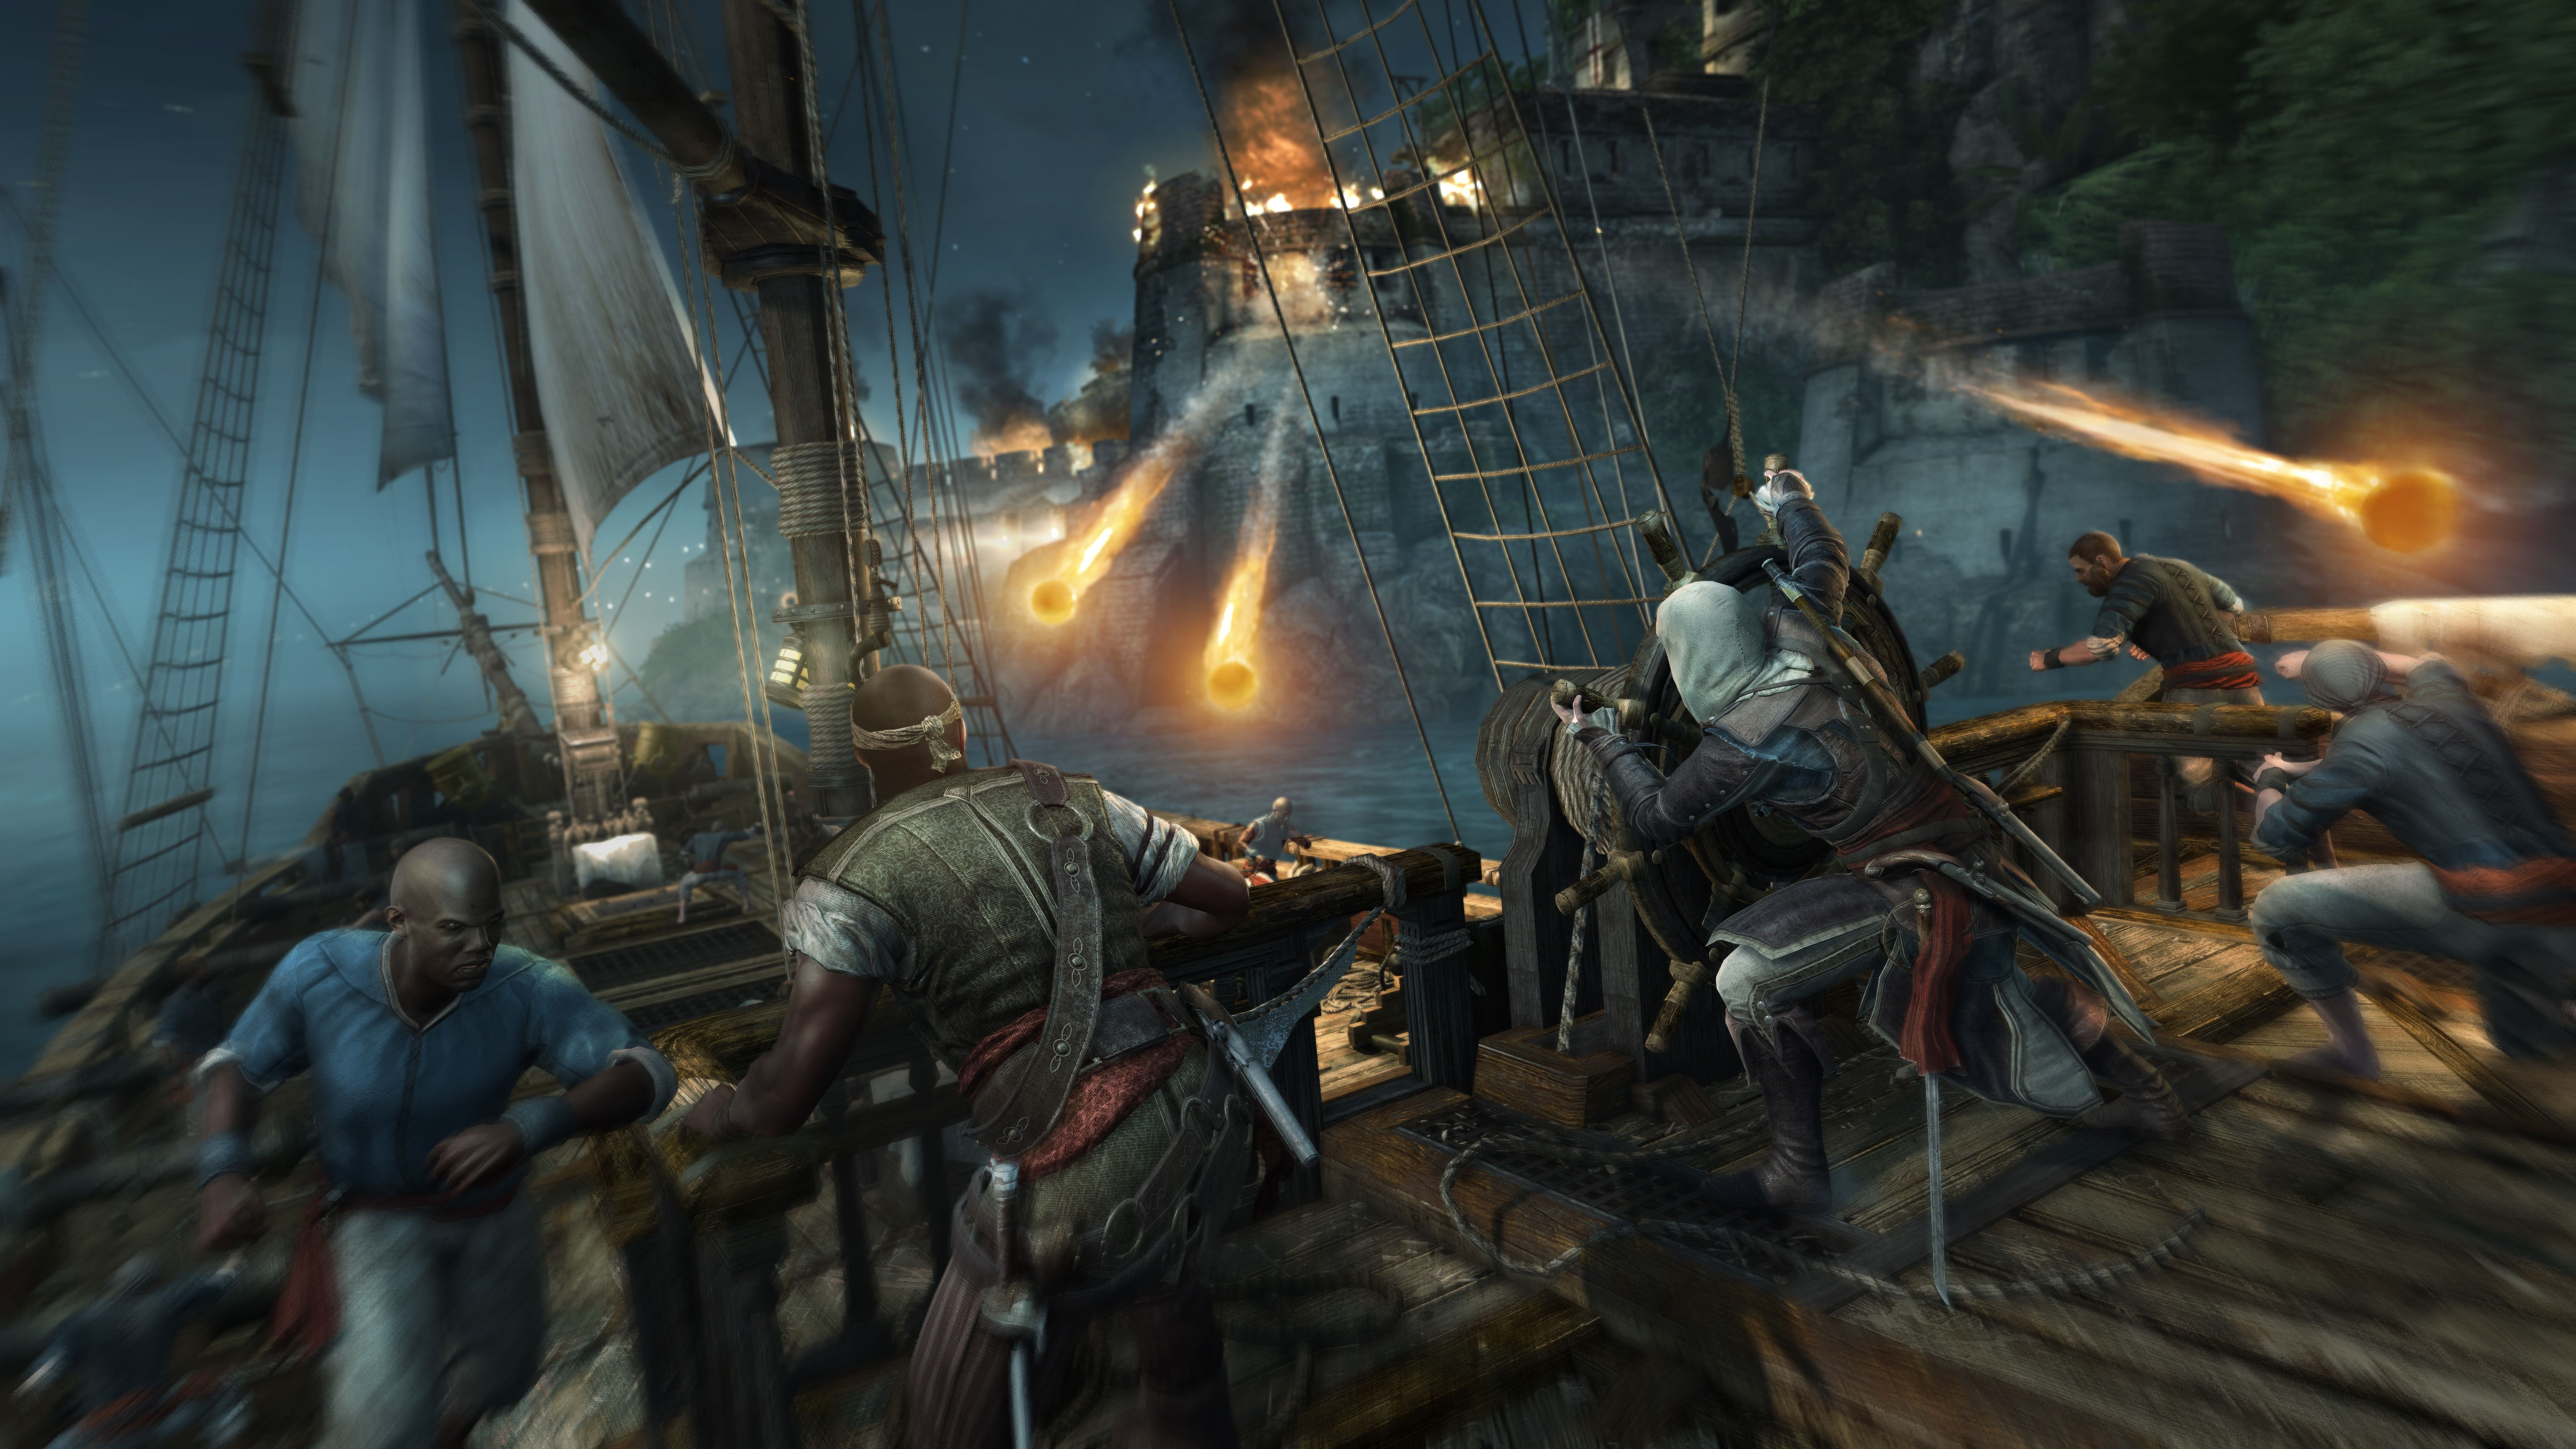 Assassins-Creed-IV-Black-Flag_2013_07-22-13_001.jpg